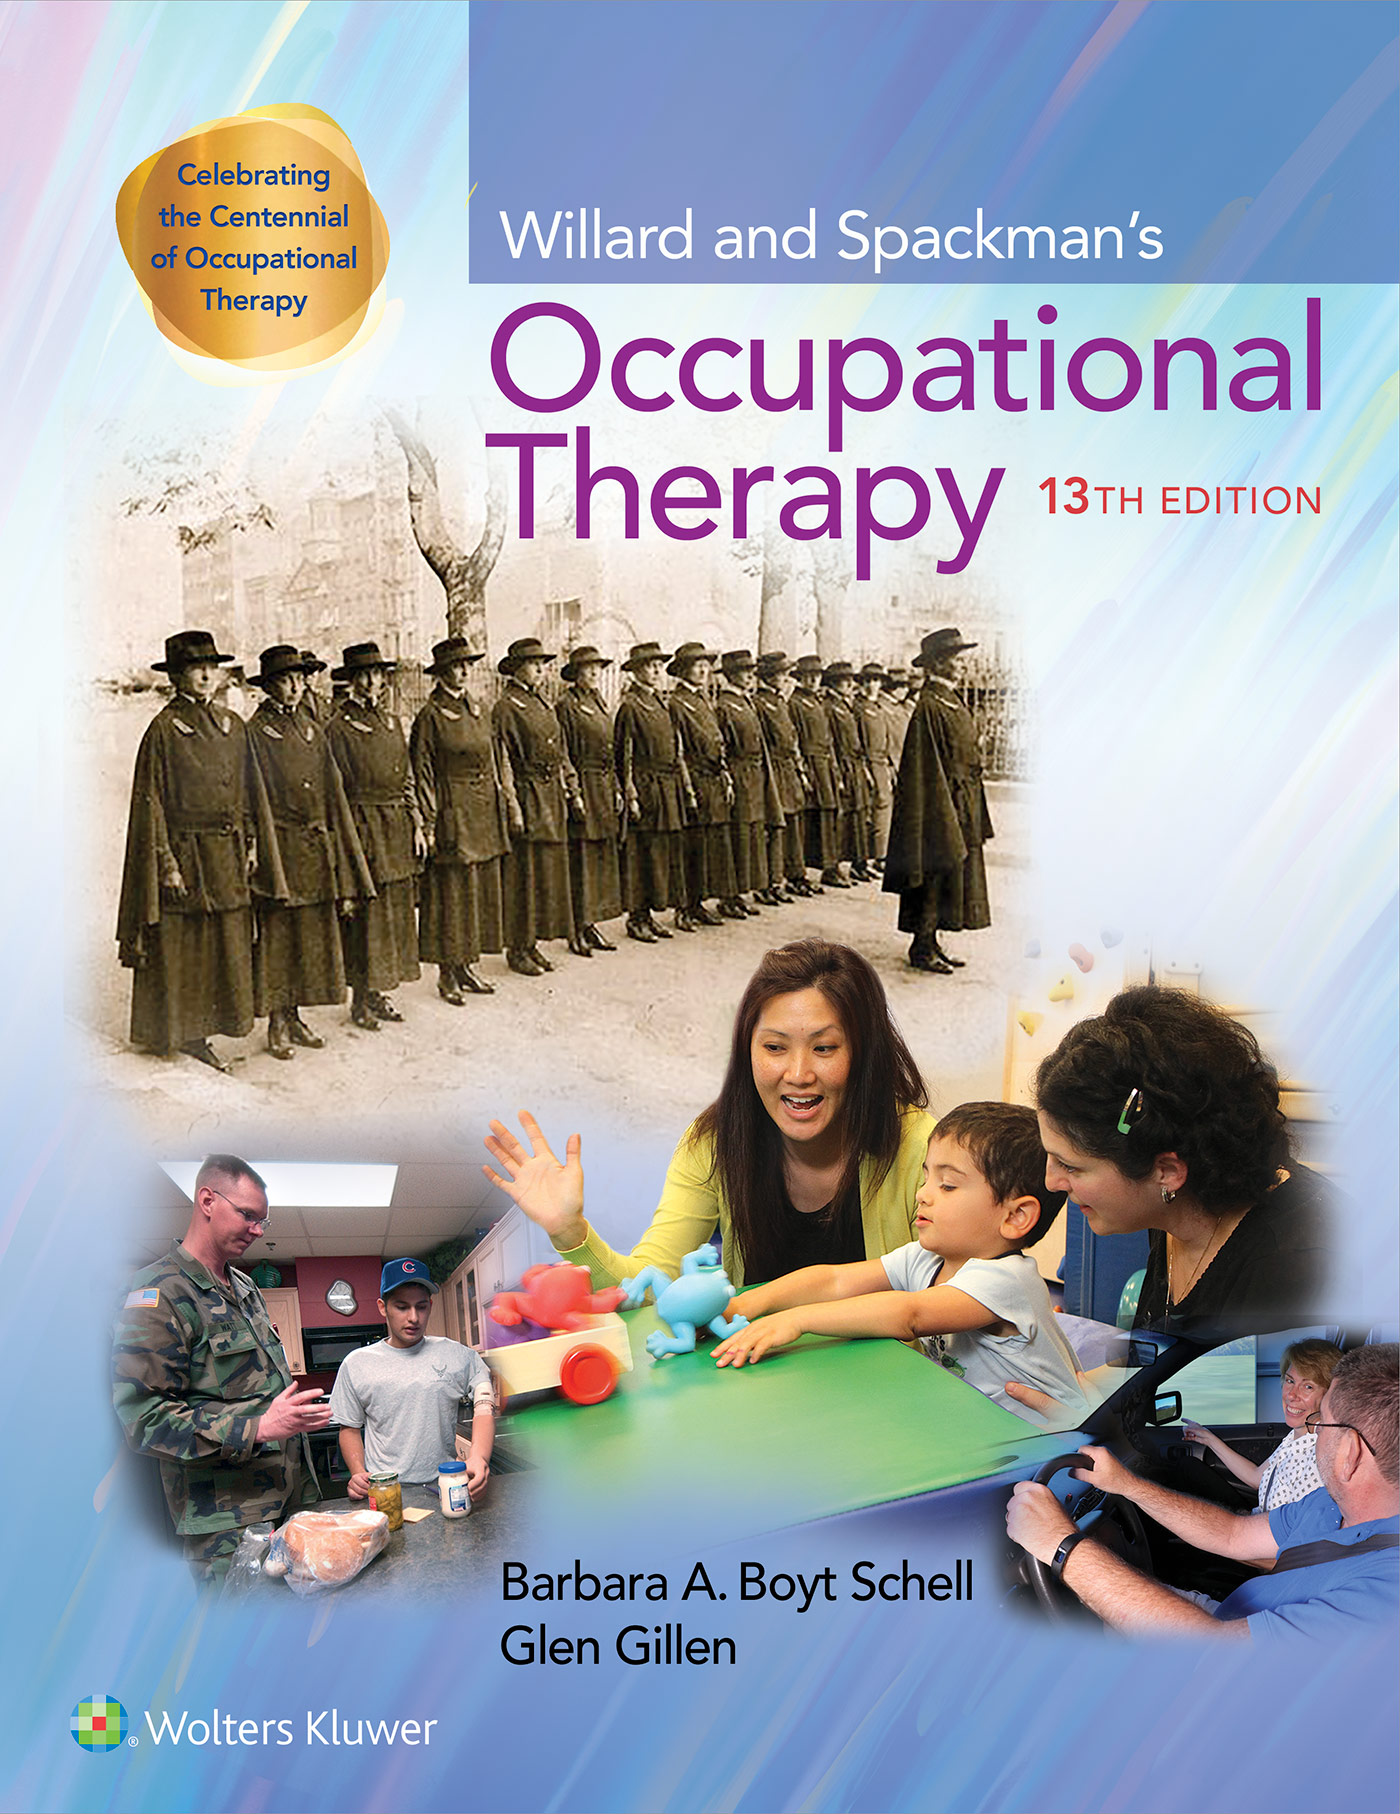 Willard and Spackman's Occupational Therapy 13e